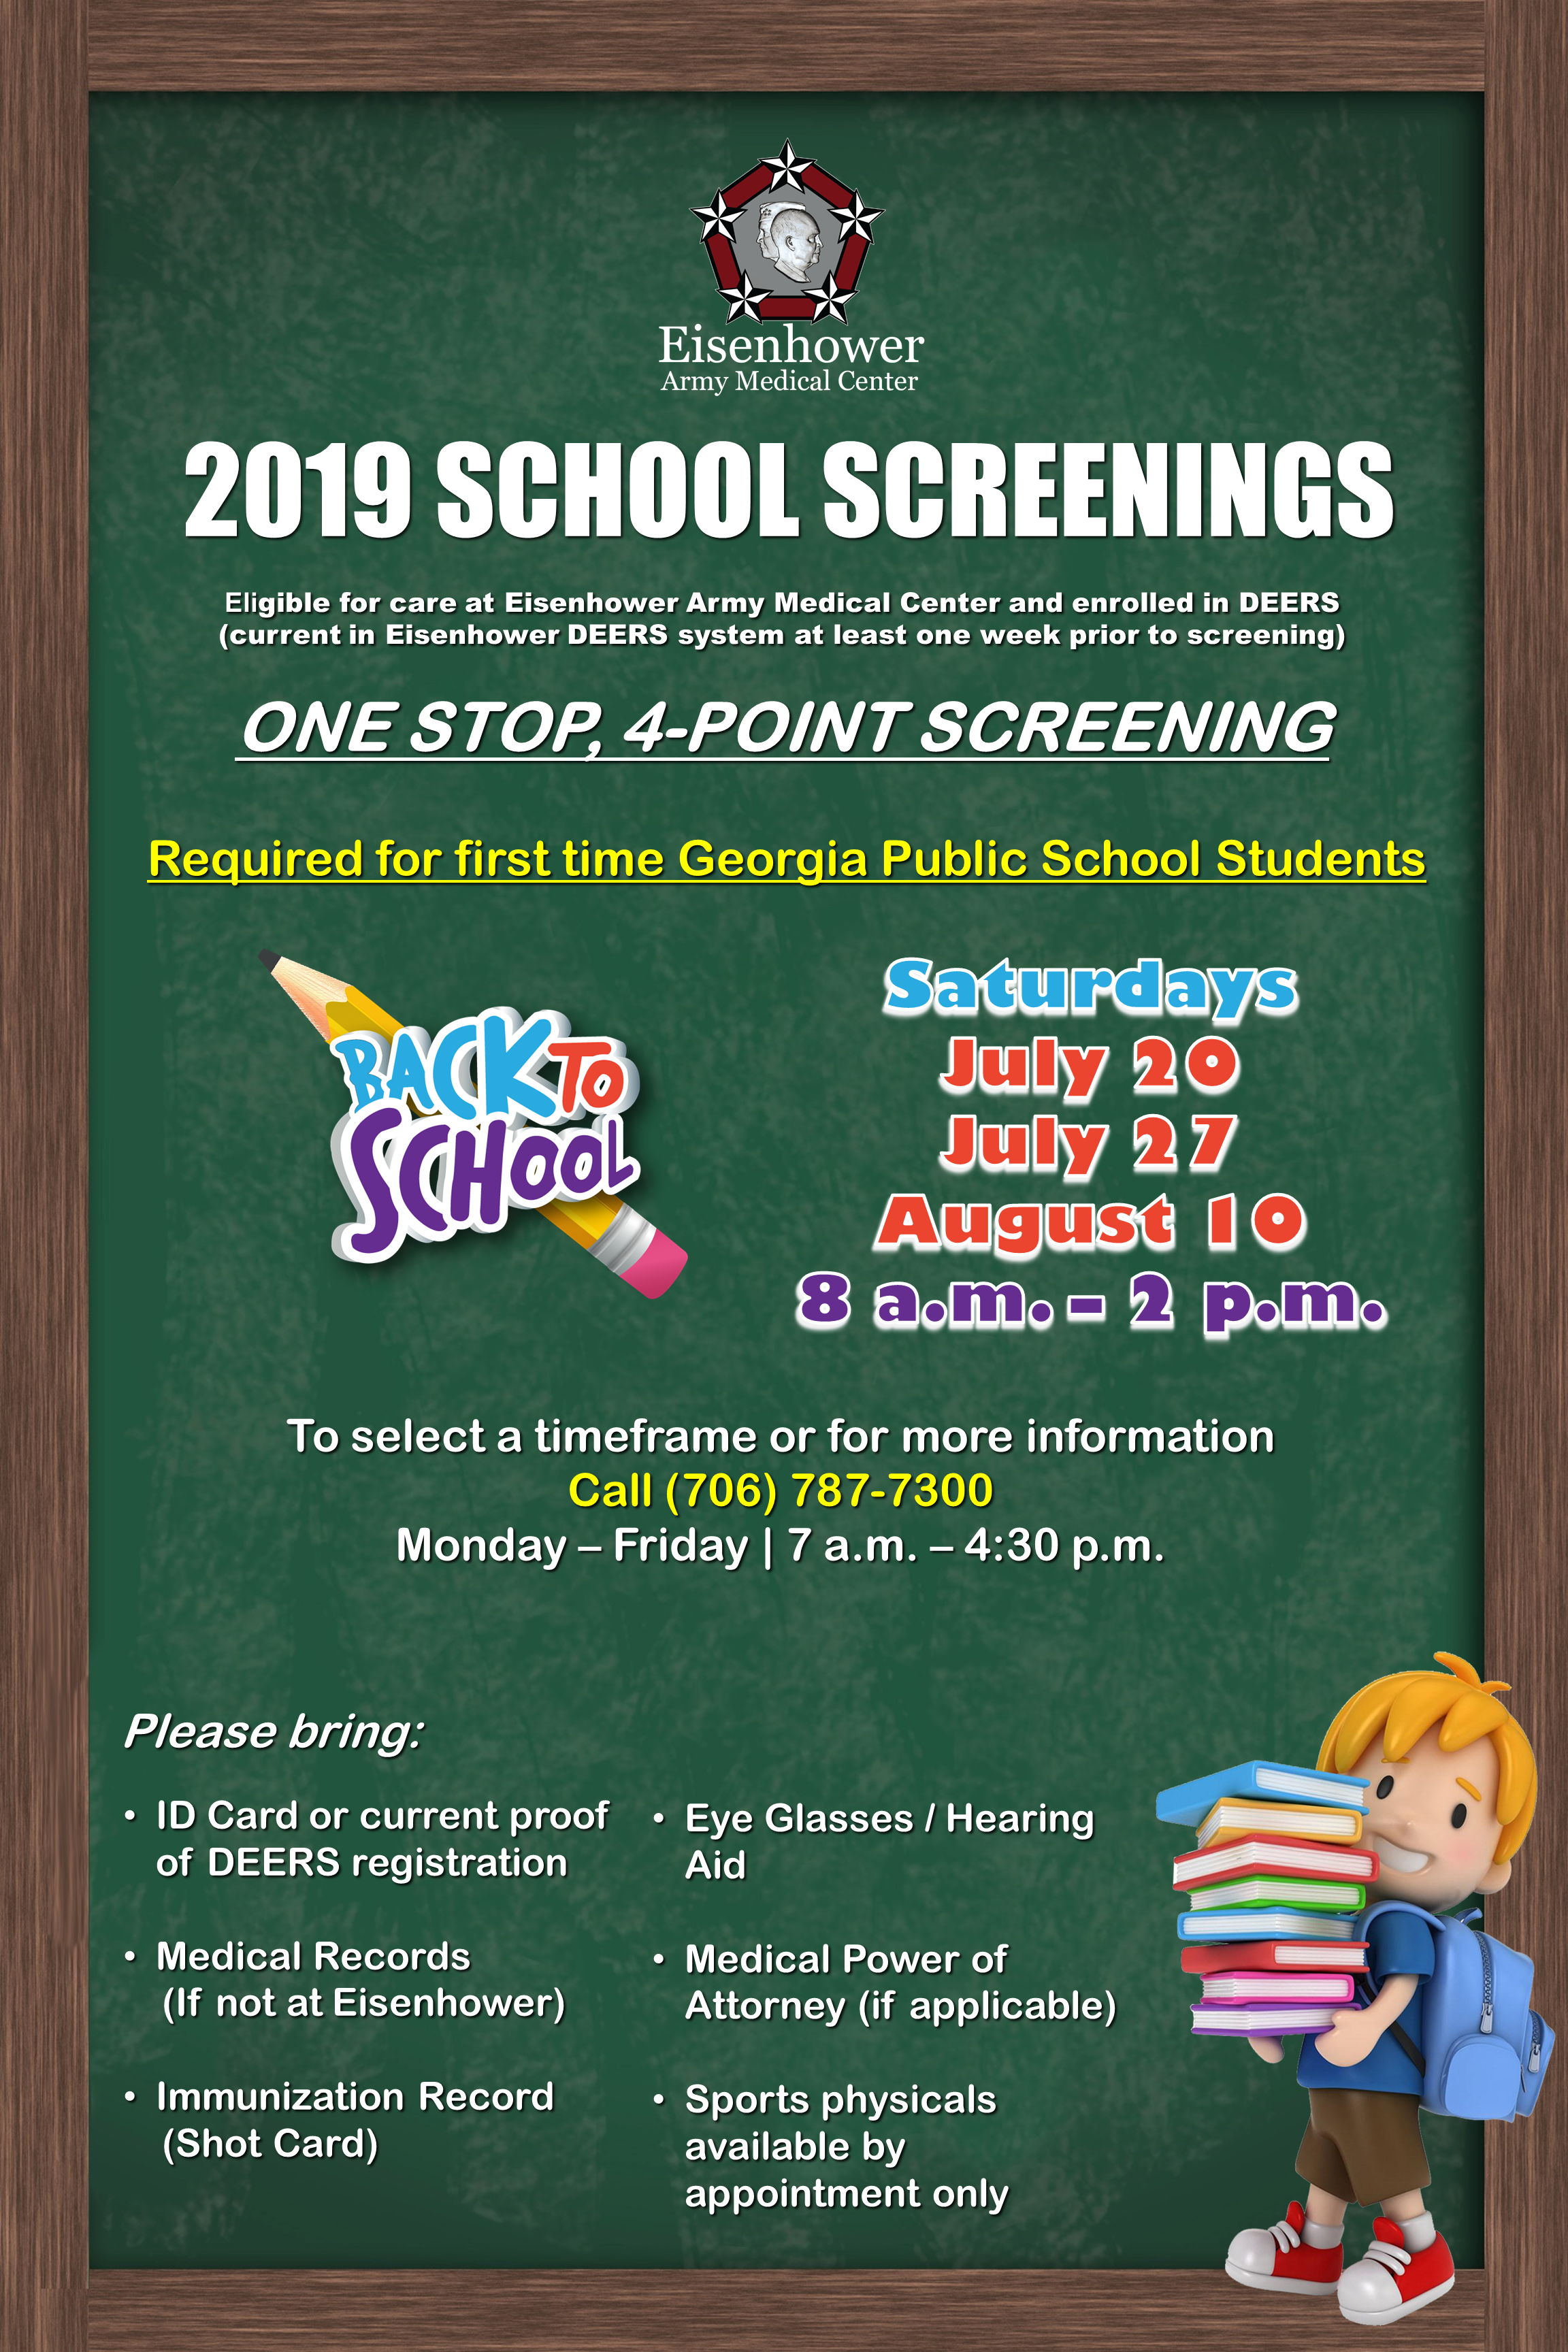 School screenings for the 2019 school year for military families